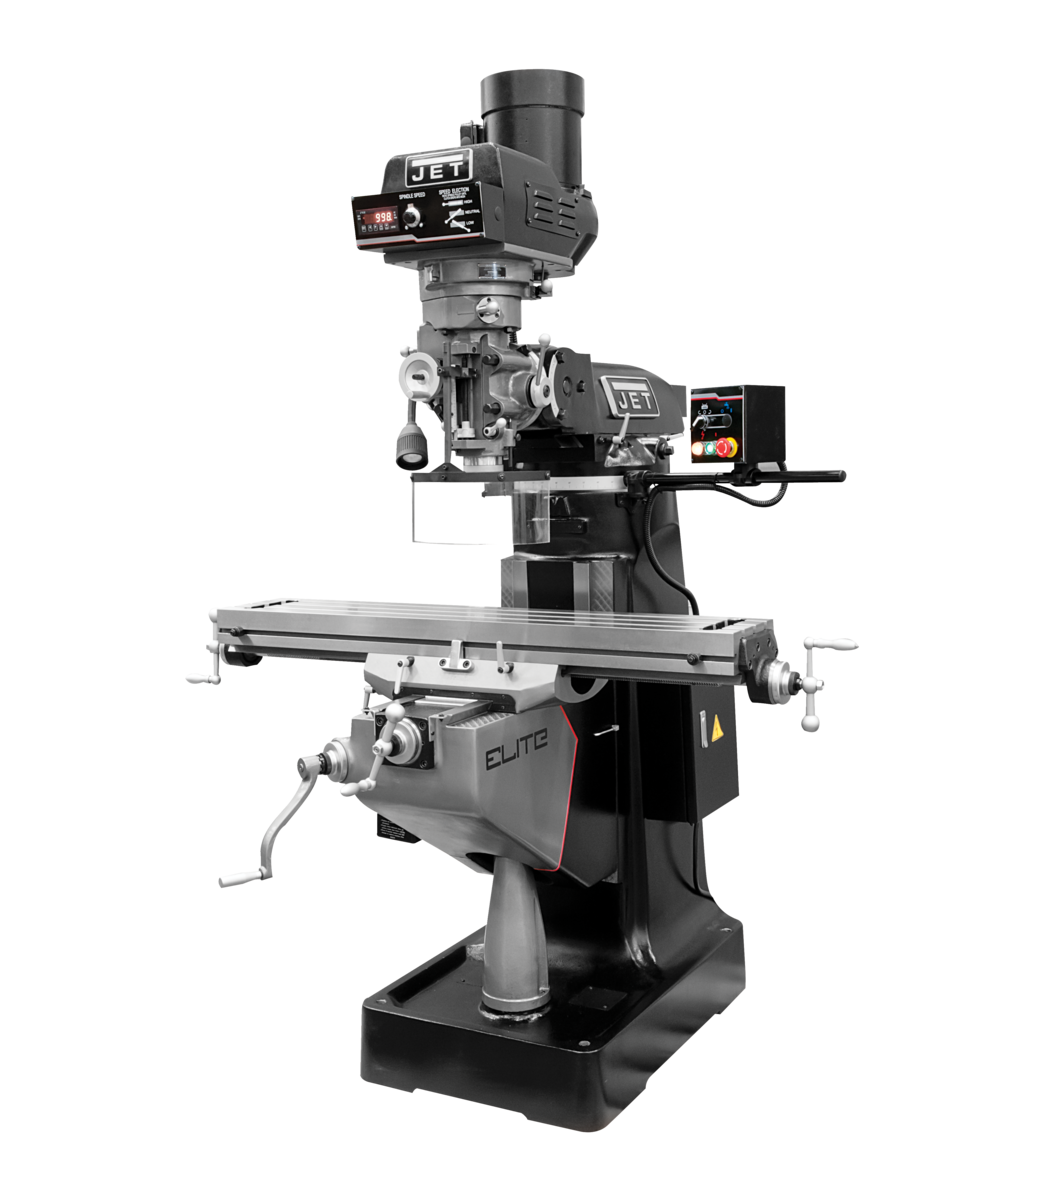 EVS-949 Mill with 2-Axis ACU-RITE 203 DRO and Servo X, Y-Axis Powerfeeds